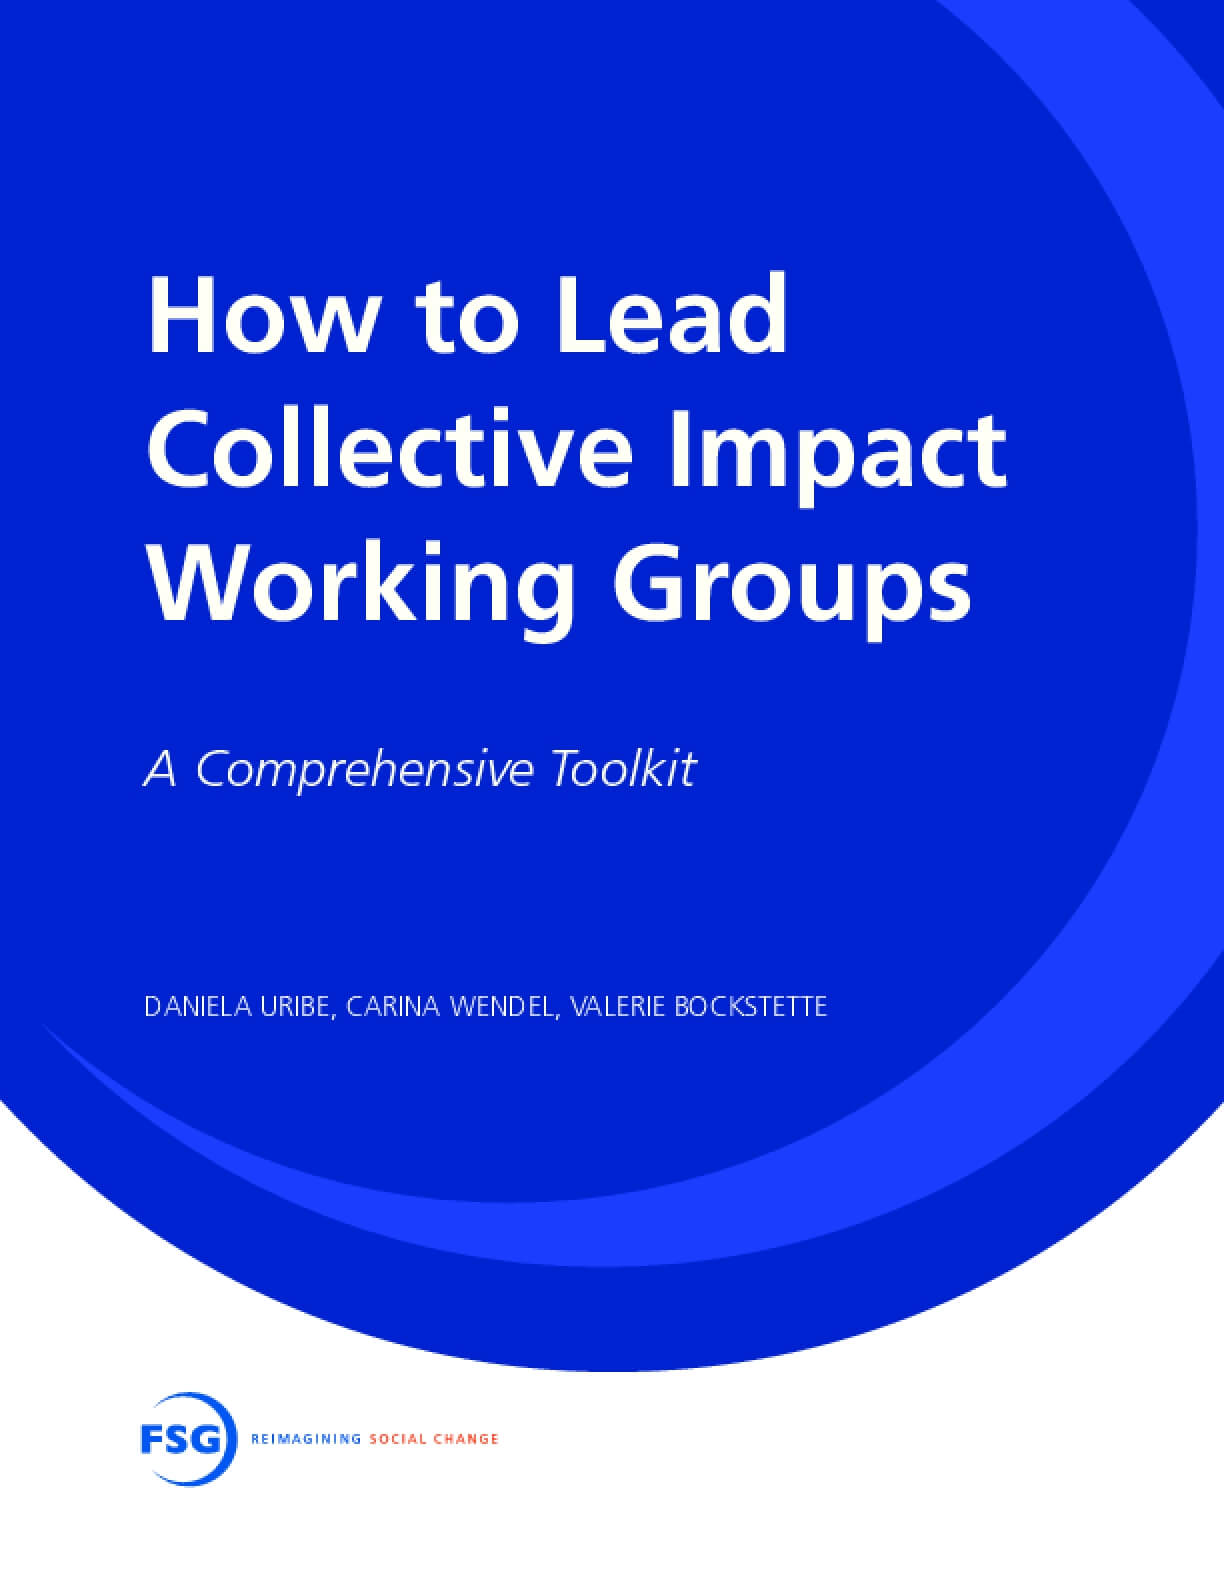 How to Lead Collective Impact Working Groups: A Comprehensive Toolkit